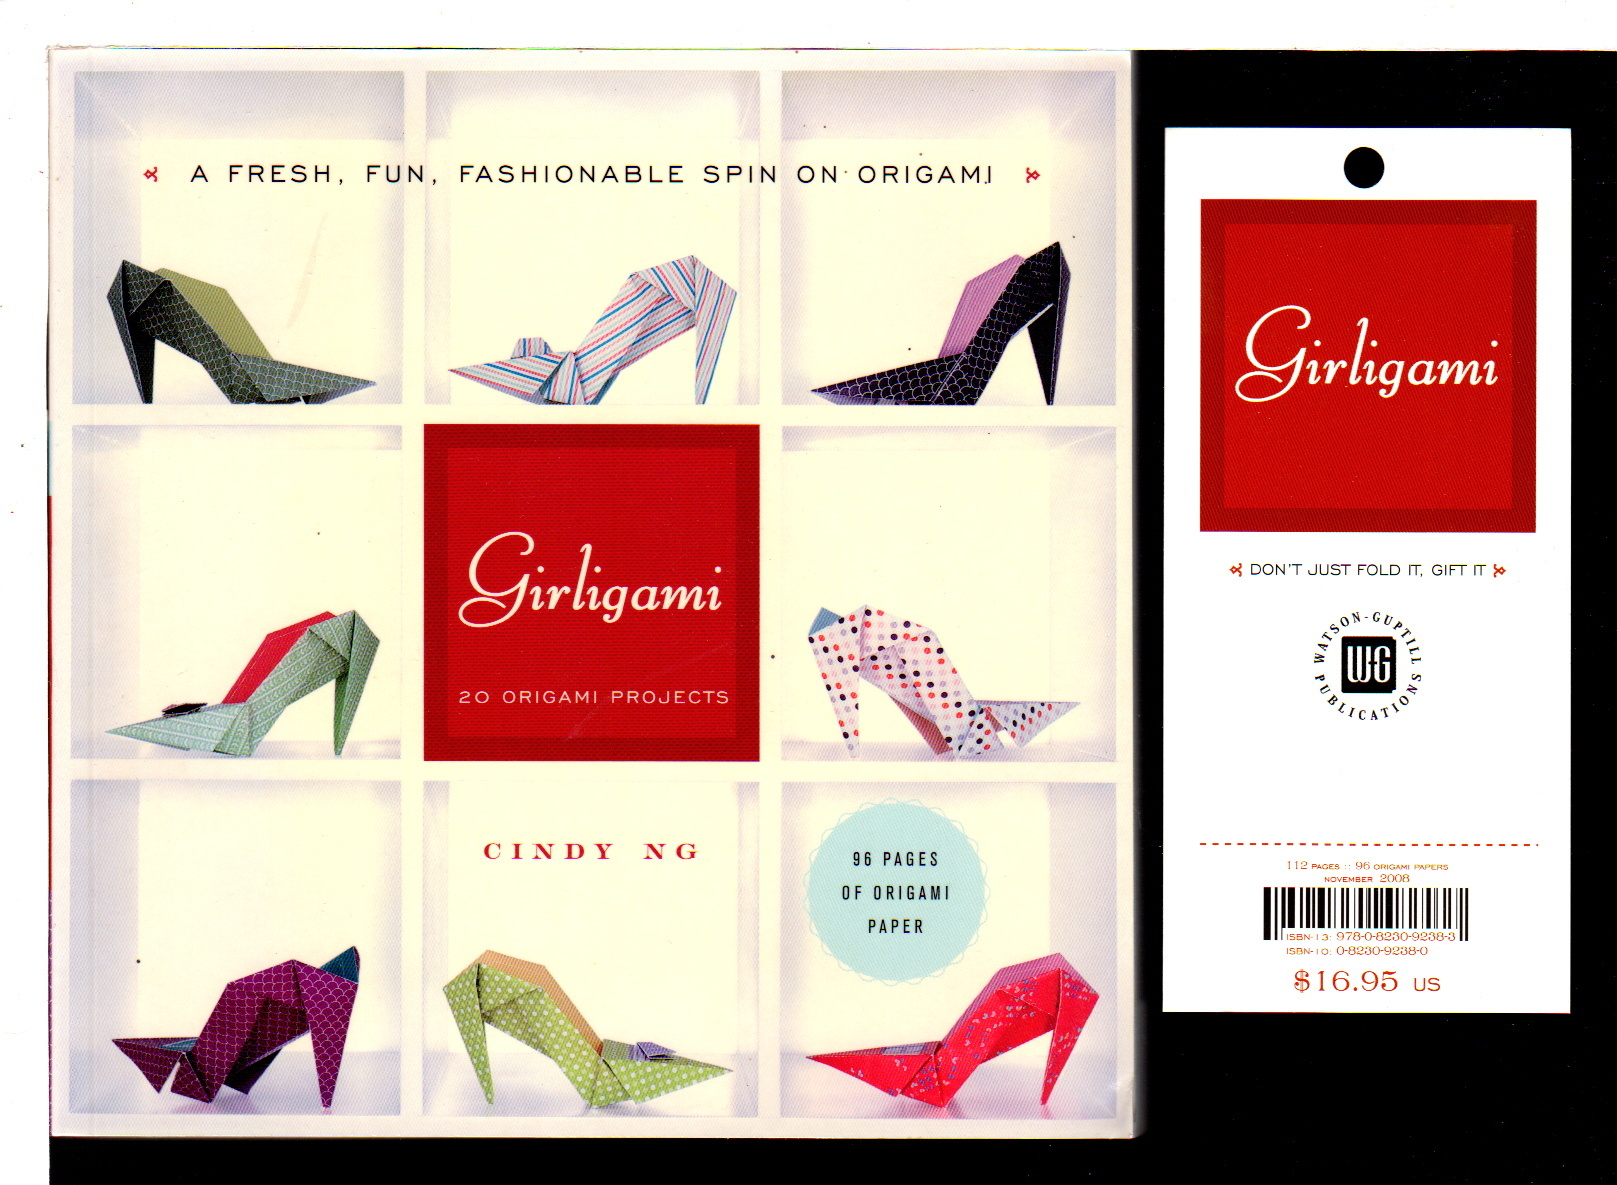 NG, CINDY. - GIRLIGAMI: A Fresh, Fun, Fashionable Spin On Origami.